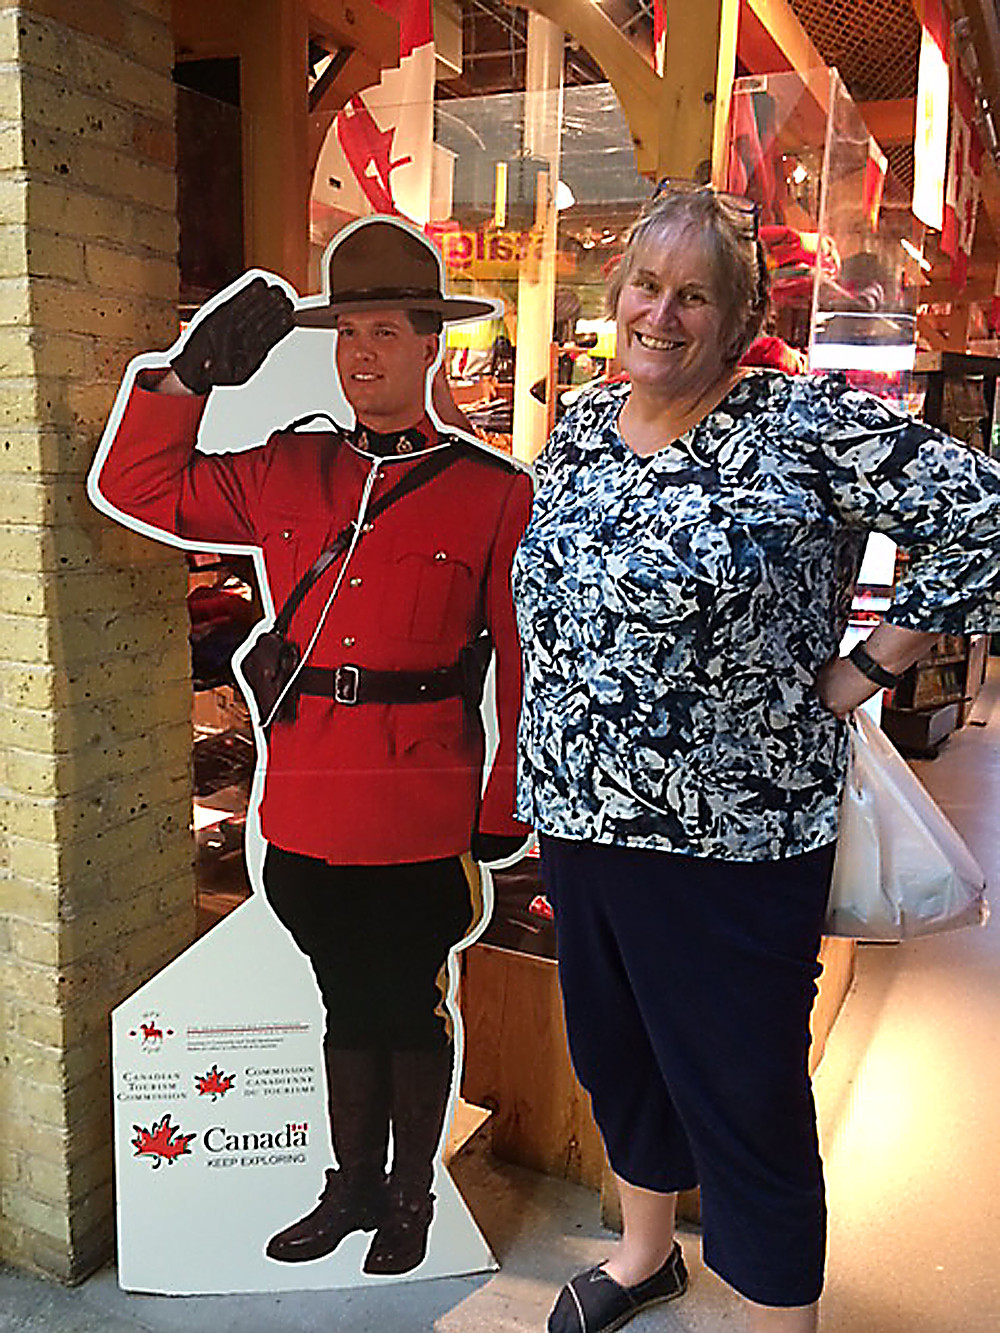 Kim Kyle with a Canadian mountie